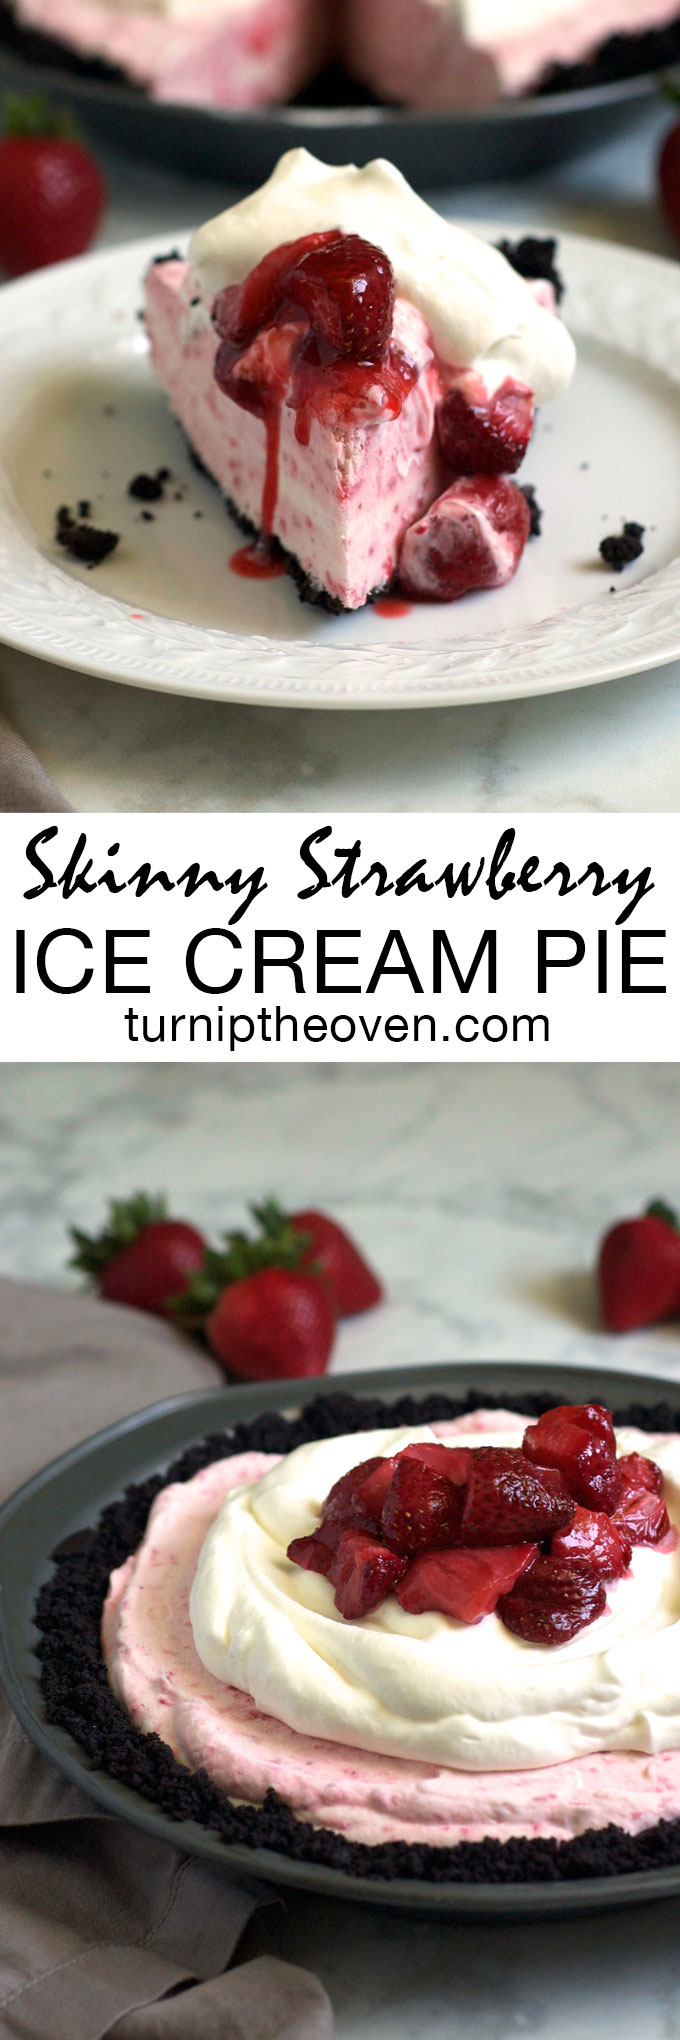 This luscious strawberry ice cream pie is made with Greek yogurt! With only 7 easy ingredients, it comes together in a snap and makes the perfect healthy and showstopping summer dessert!